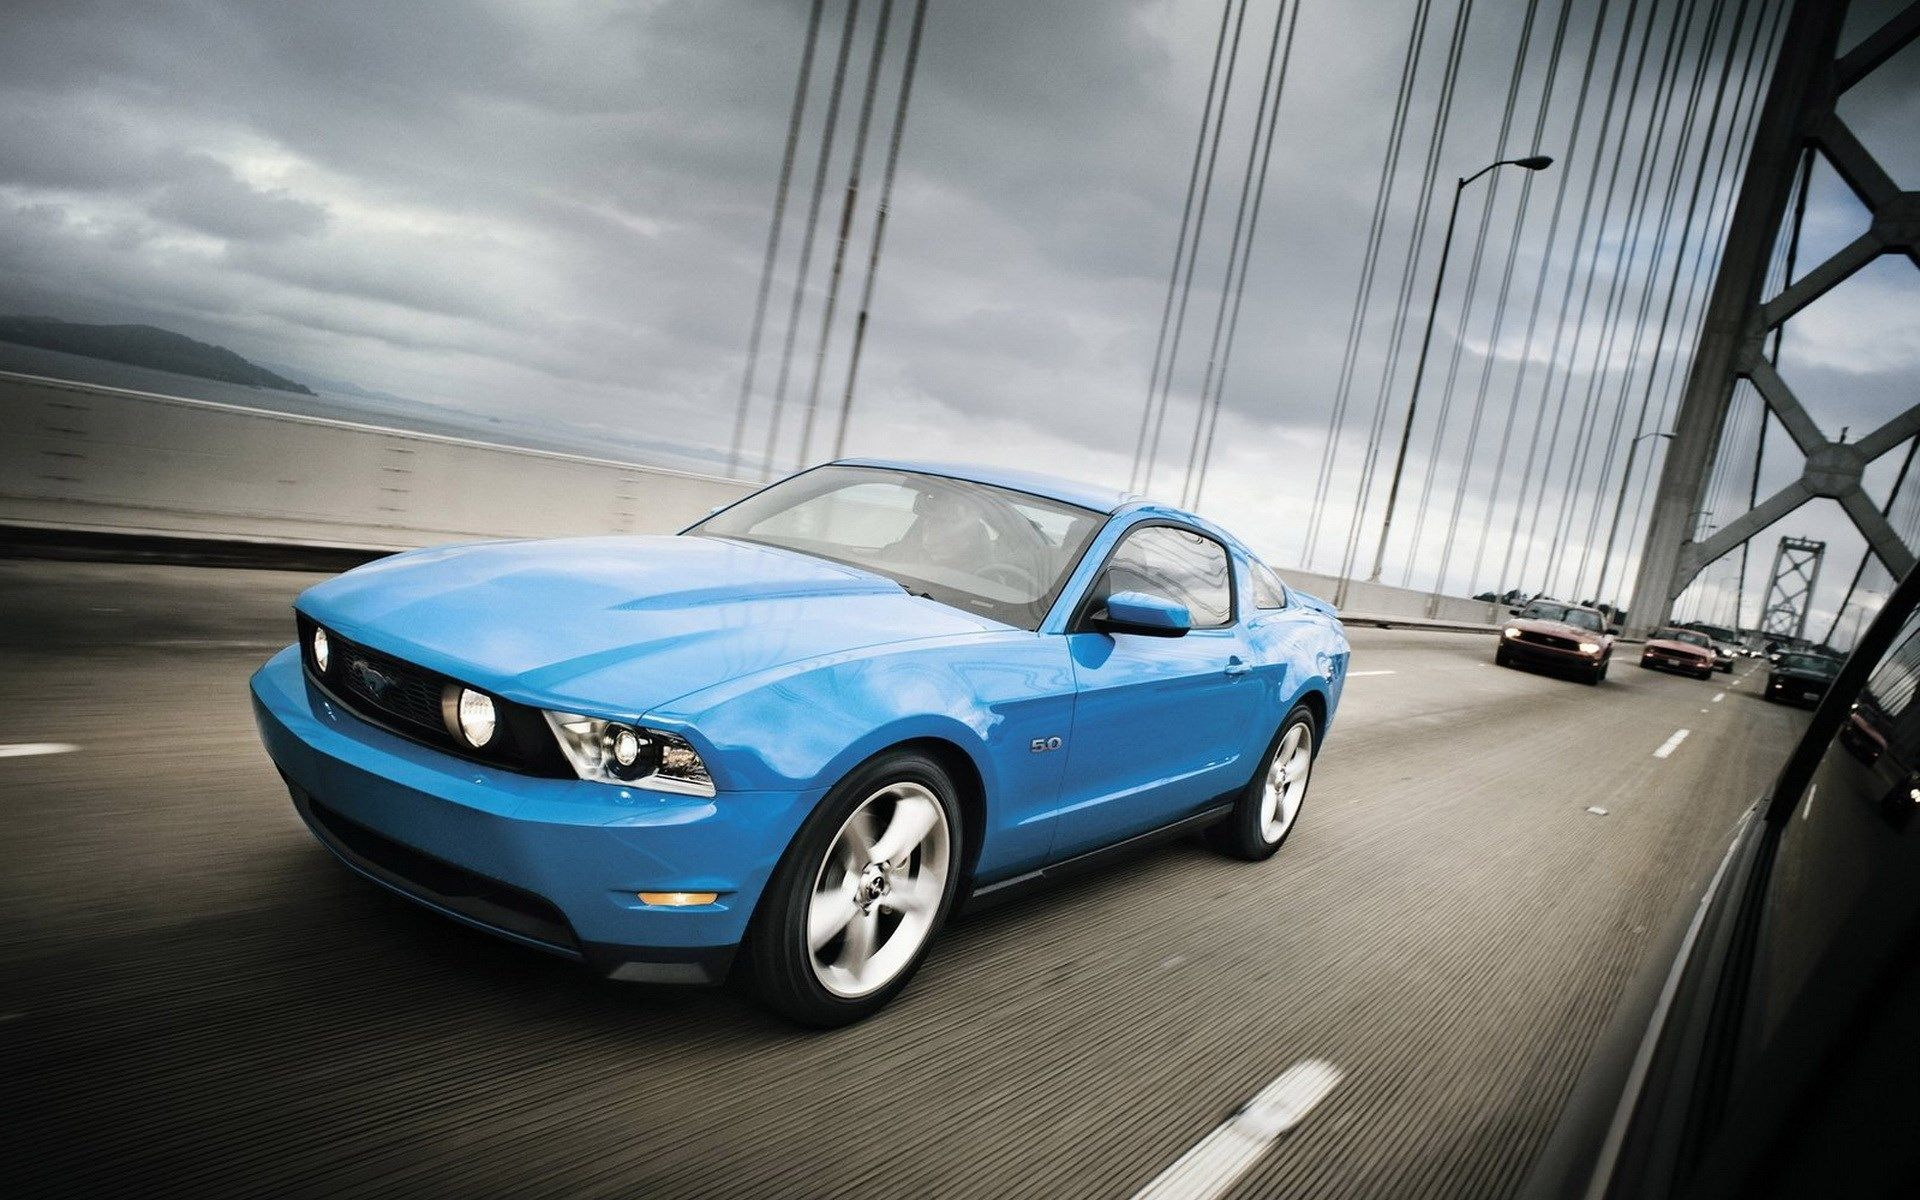 Free Download Ford Mustang Shelby Ford Mustang Gt Ford Mustang Ford Mustang Shelby